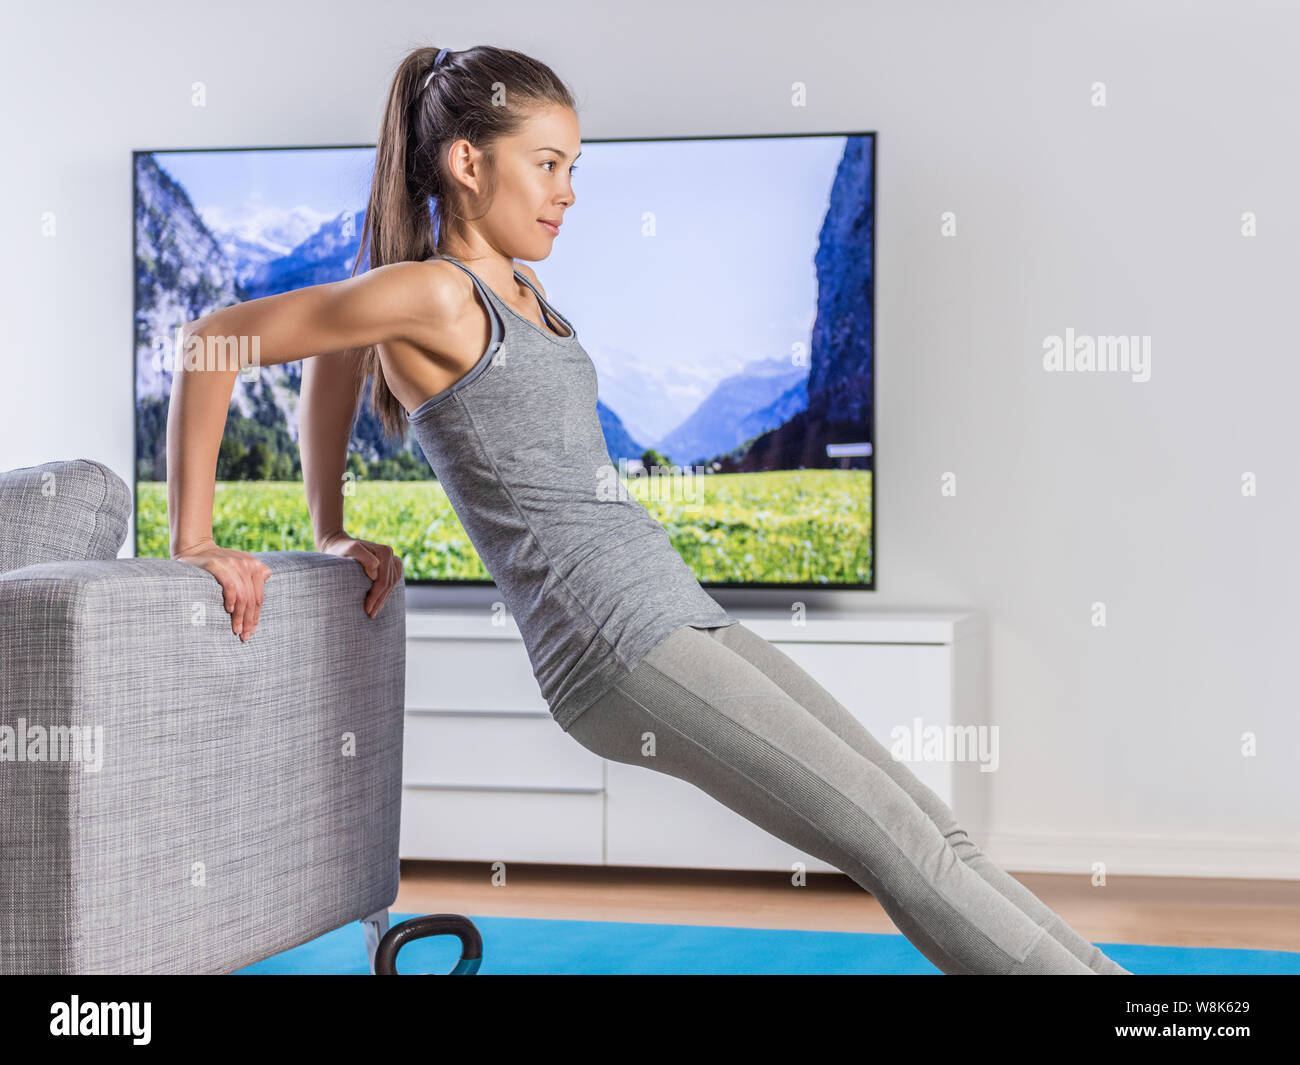 Home Fitness Woman Strength Training Arms Watching Online Tv